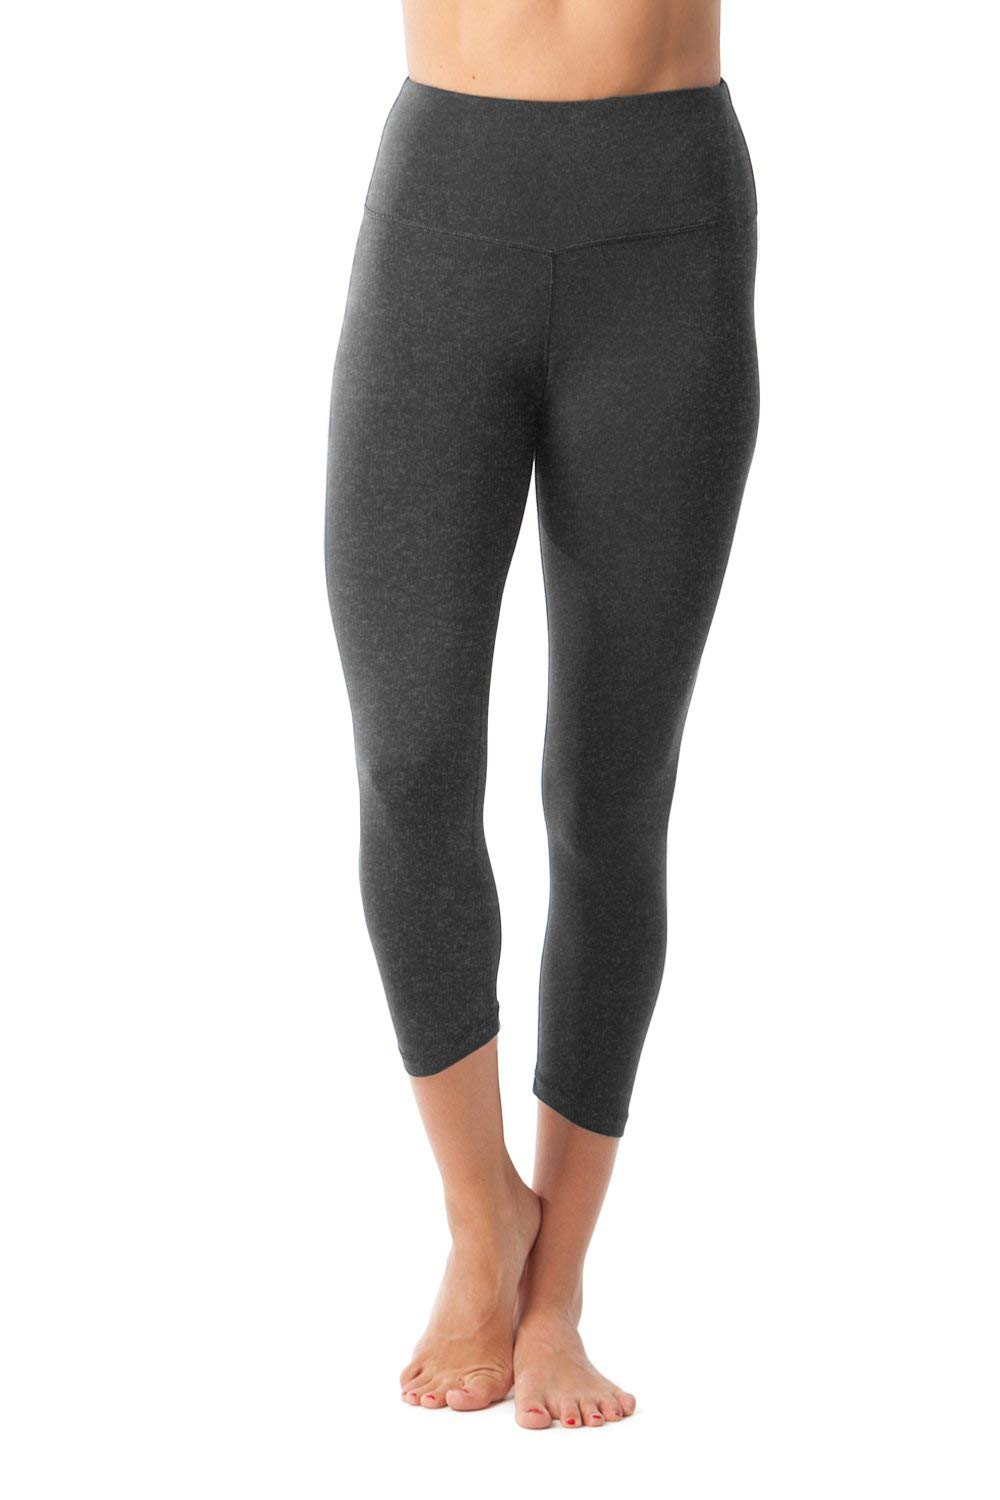 90 Degree By Reflex - High Waist Tummy Control Shapewear - Power Flex Capri Legging - Quality Guaranteed - Heather Charcoal XS by 90 Degree By Reflex